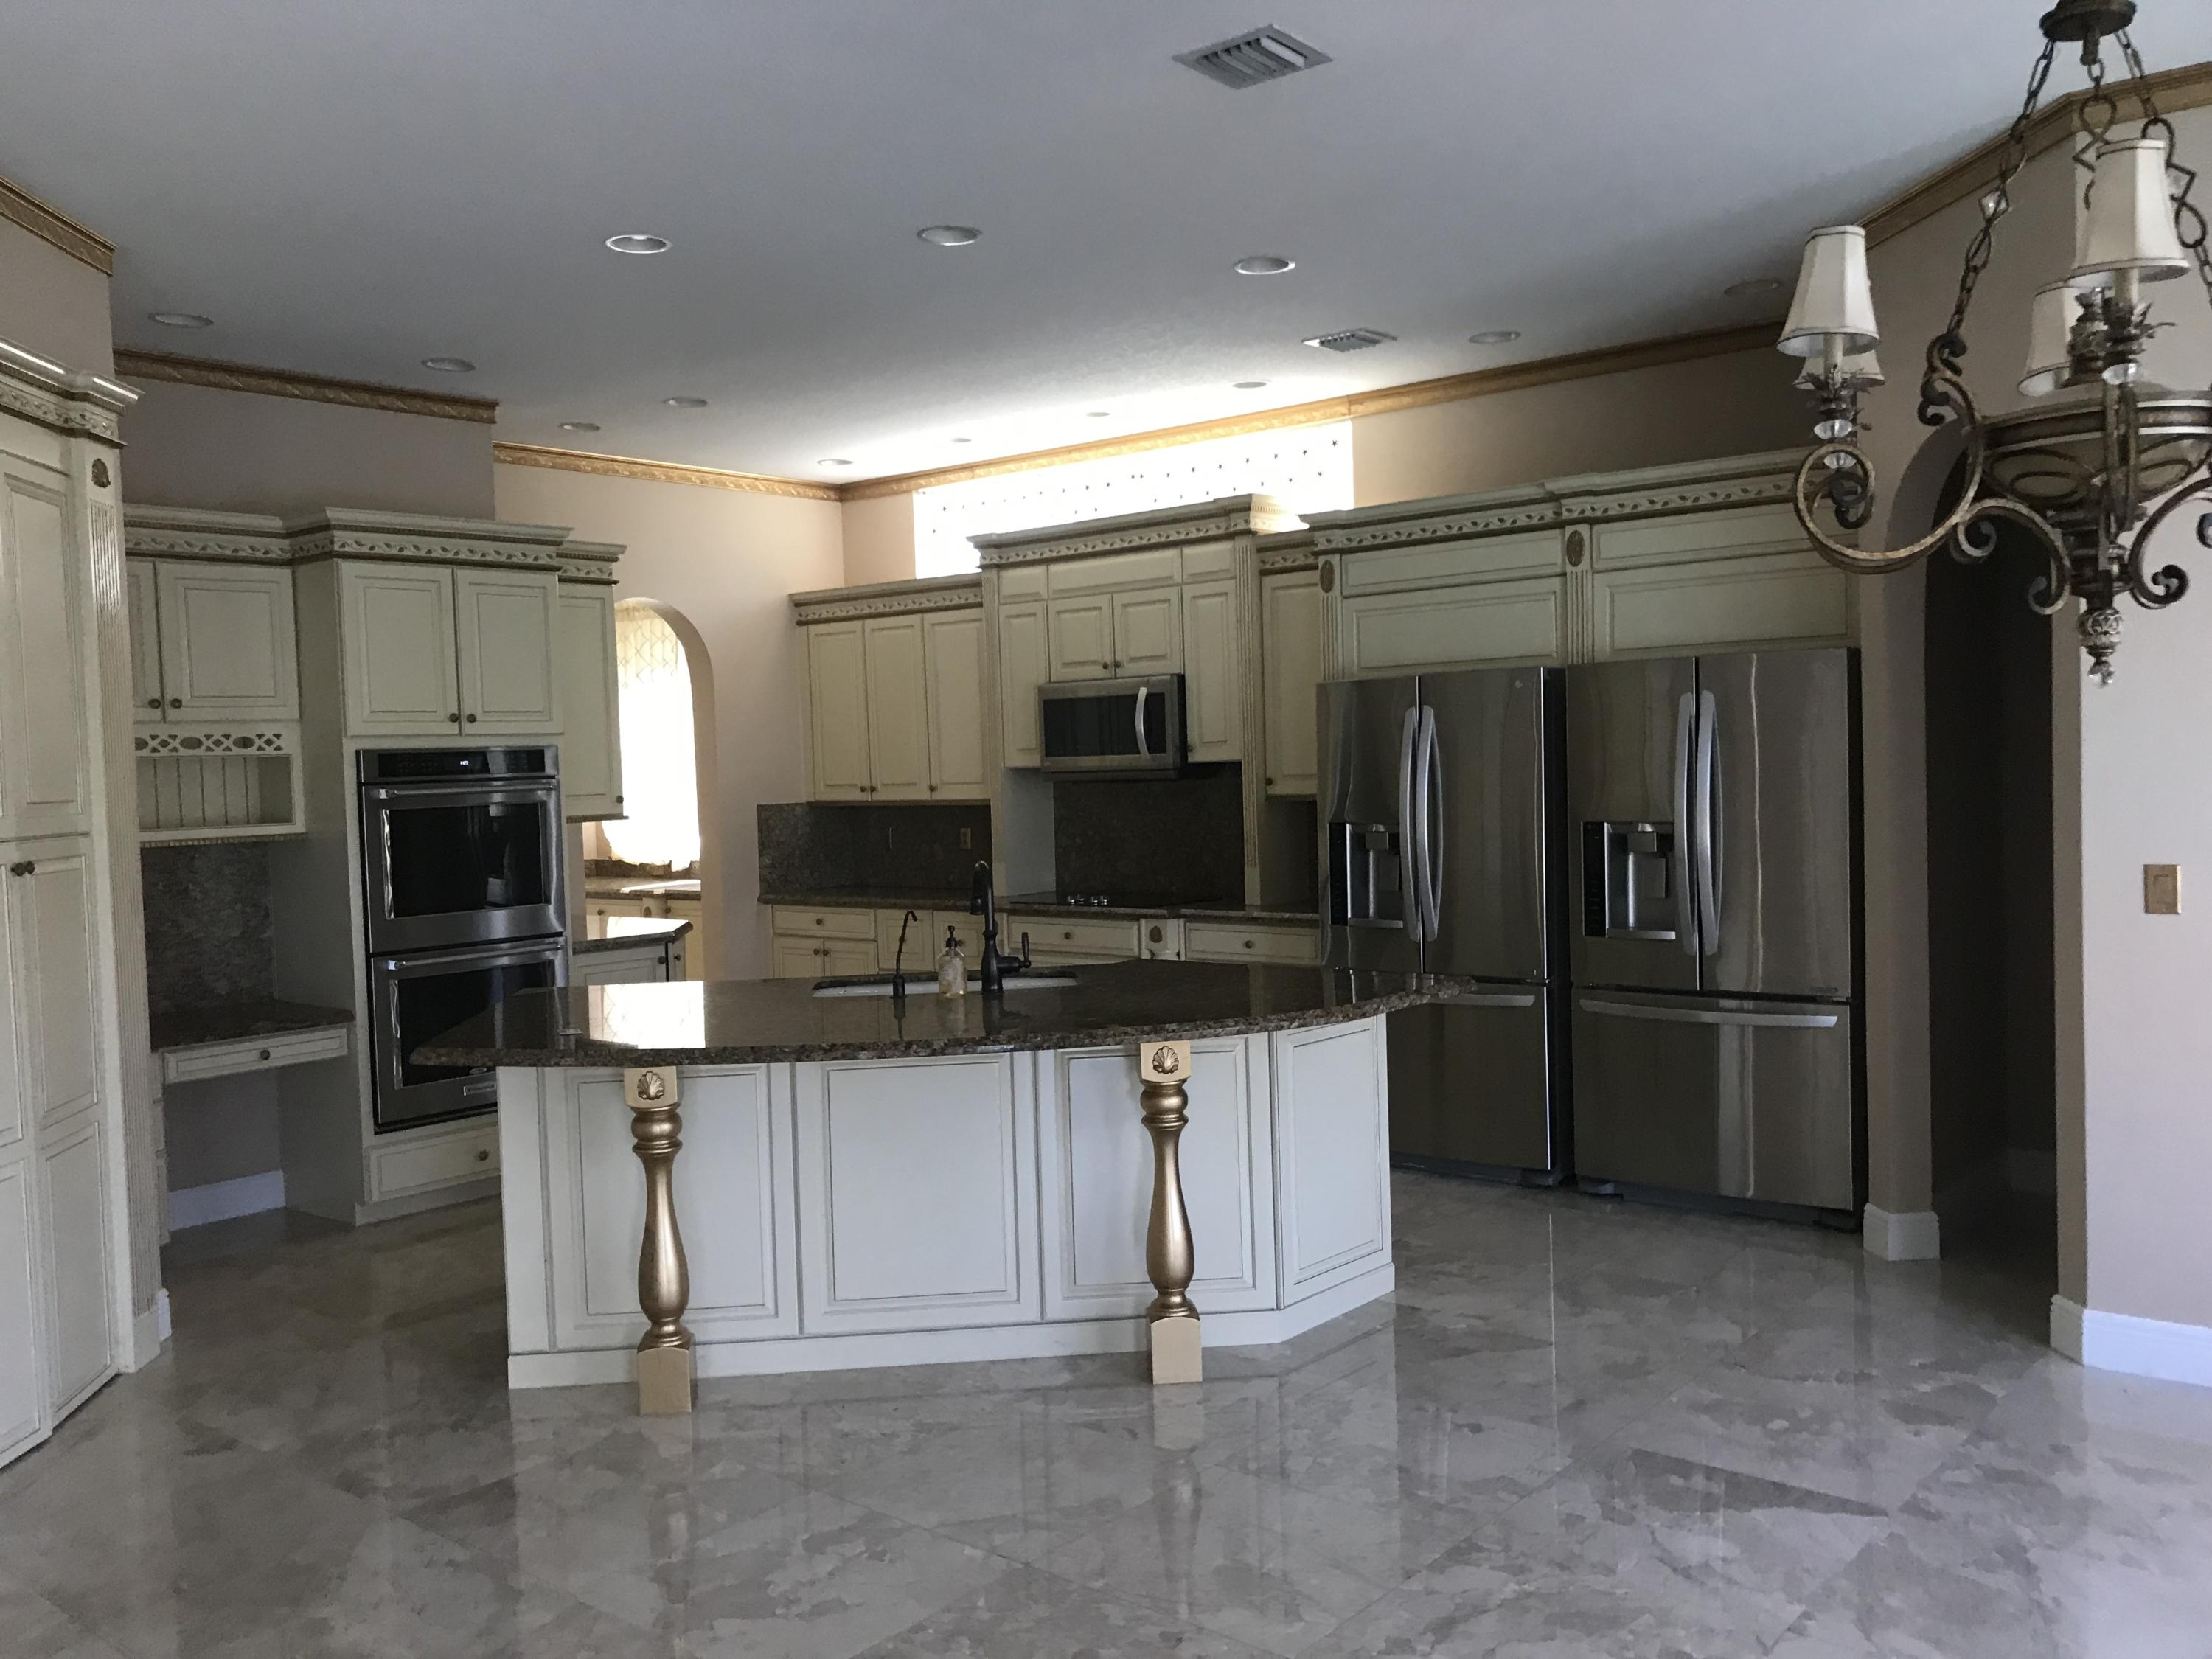 2128 Bellcrest Court Court Royal Palm Beach, FL 33411 small photo 9